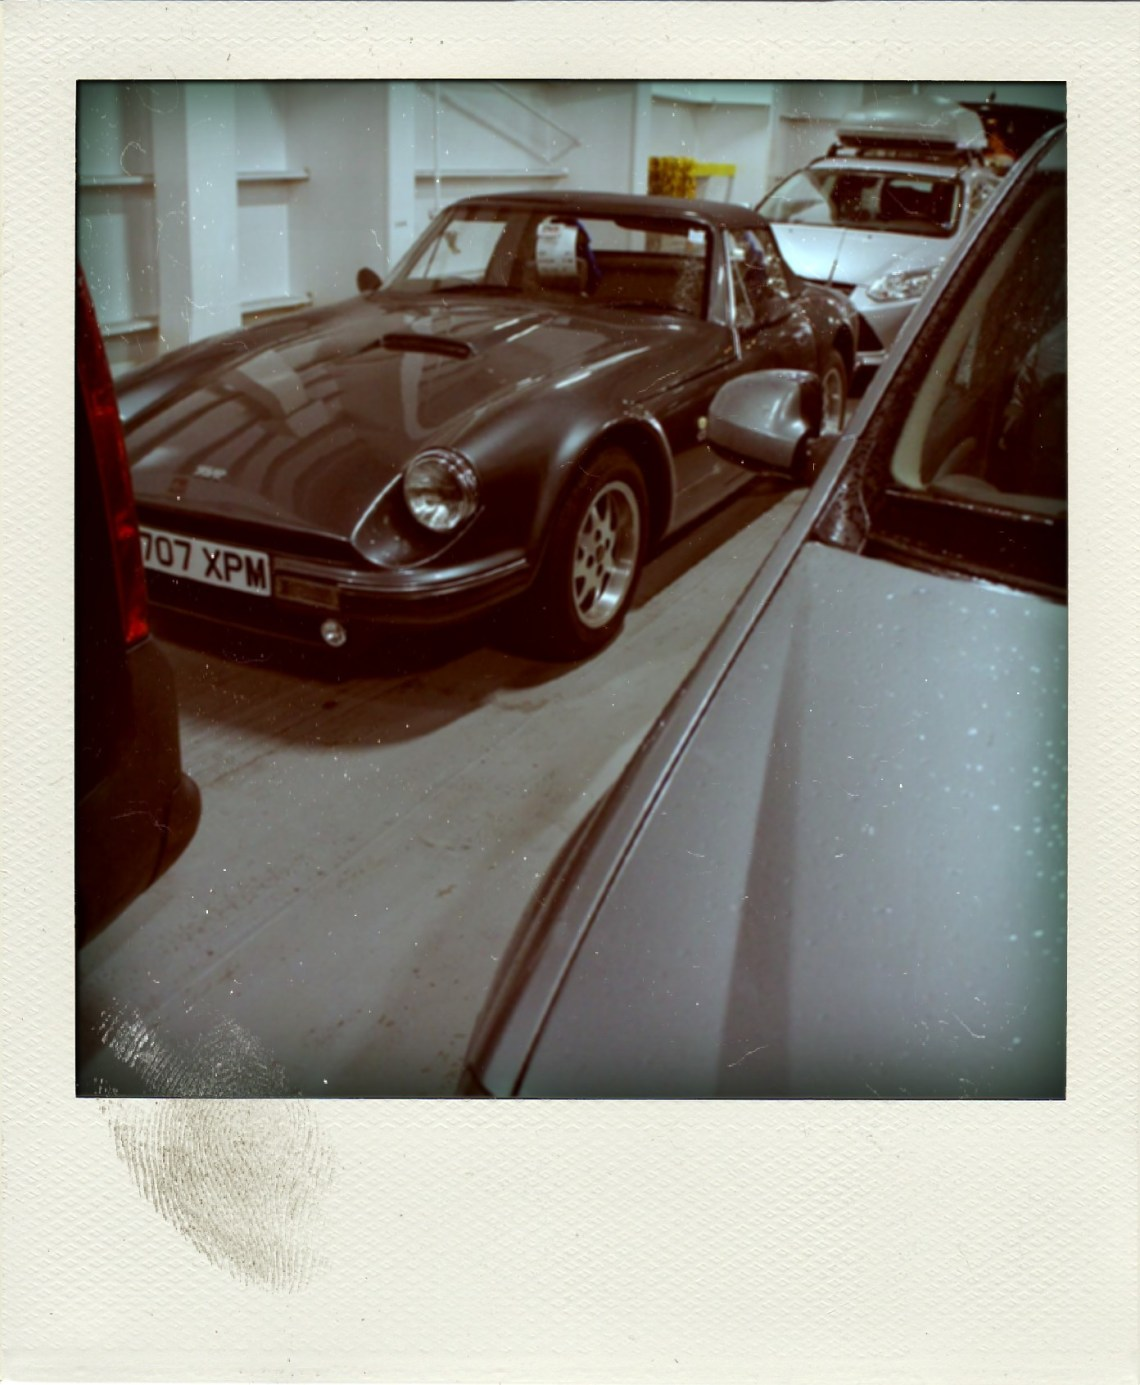 TVR S2 voiture ancienne